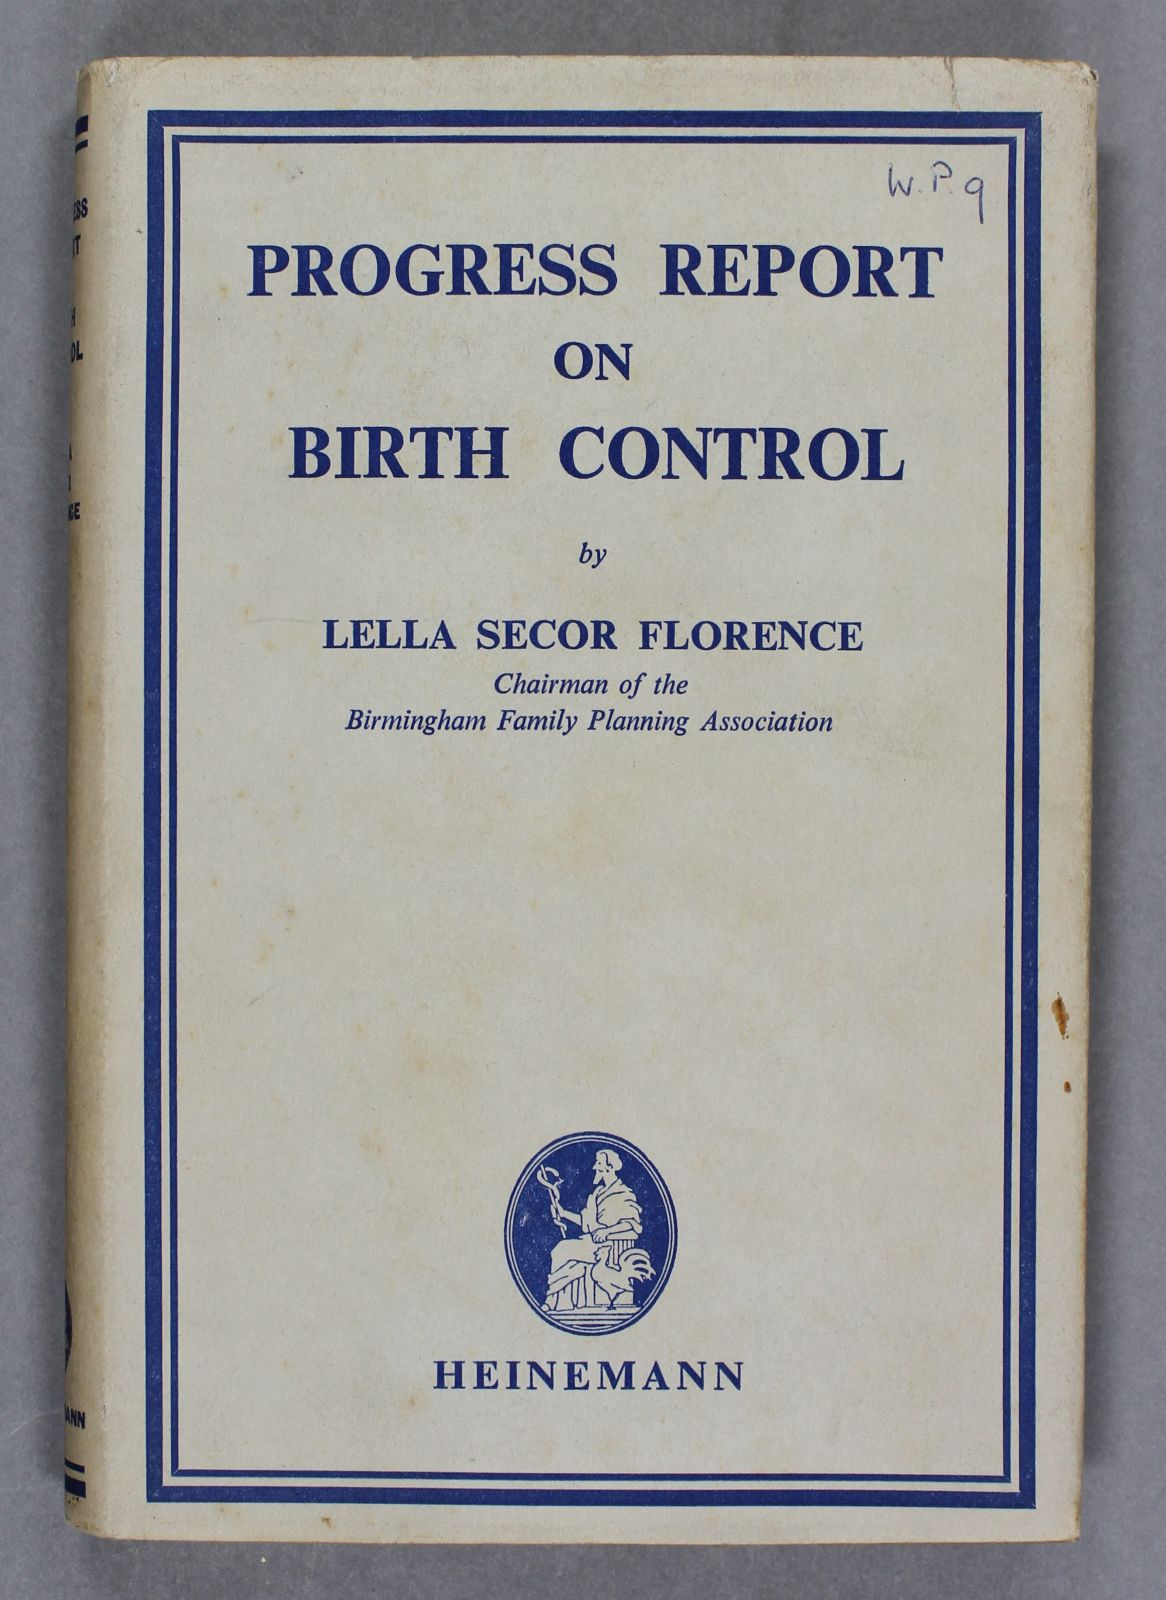 A white book with a slightly worn dust jacket. The title and author name are in blue and a blue box runs around the edges as a design feature.